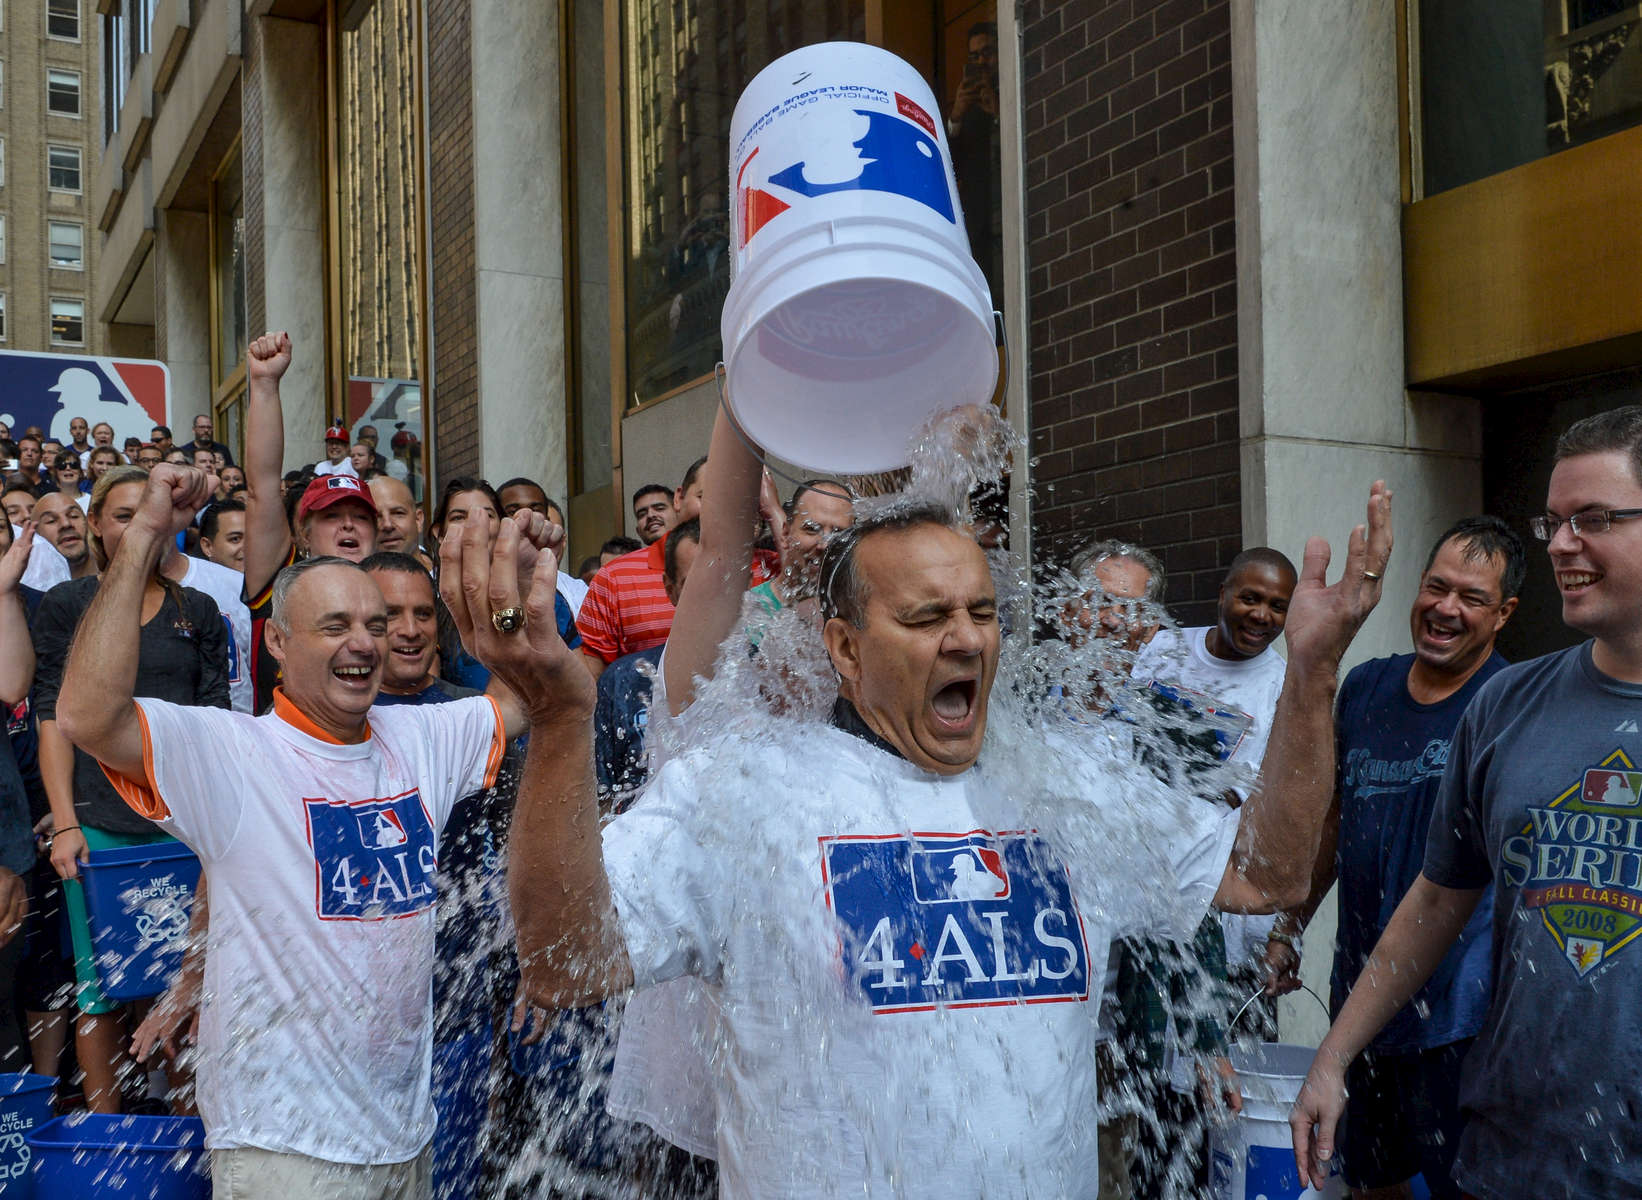 Former New York Yankees Manager Joe Torre along with MLB Commissioner Rob Manfred take on the ALS Ice Bucket Challenge in response to New York Daily News Mike Lupica's nomination, outside MLB headquarters at 245 Park Avenue in Manhattan on Wednesday, August 20, 2014.